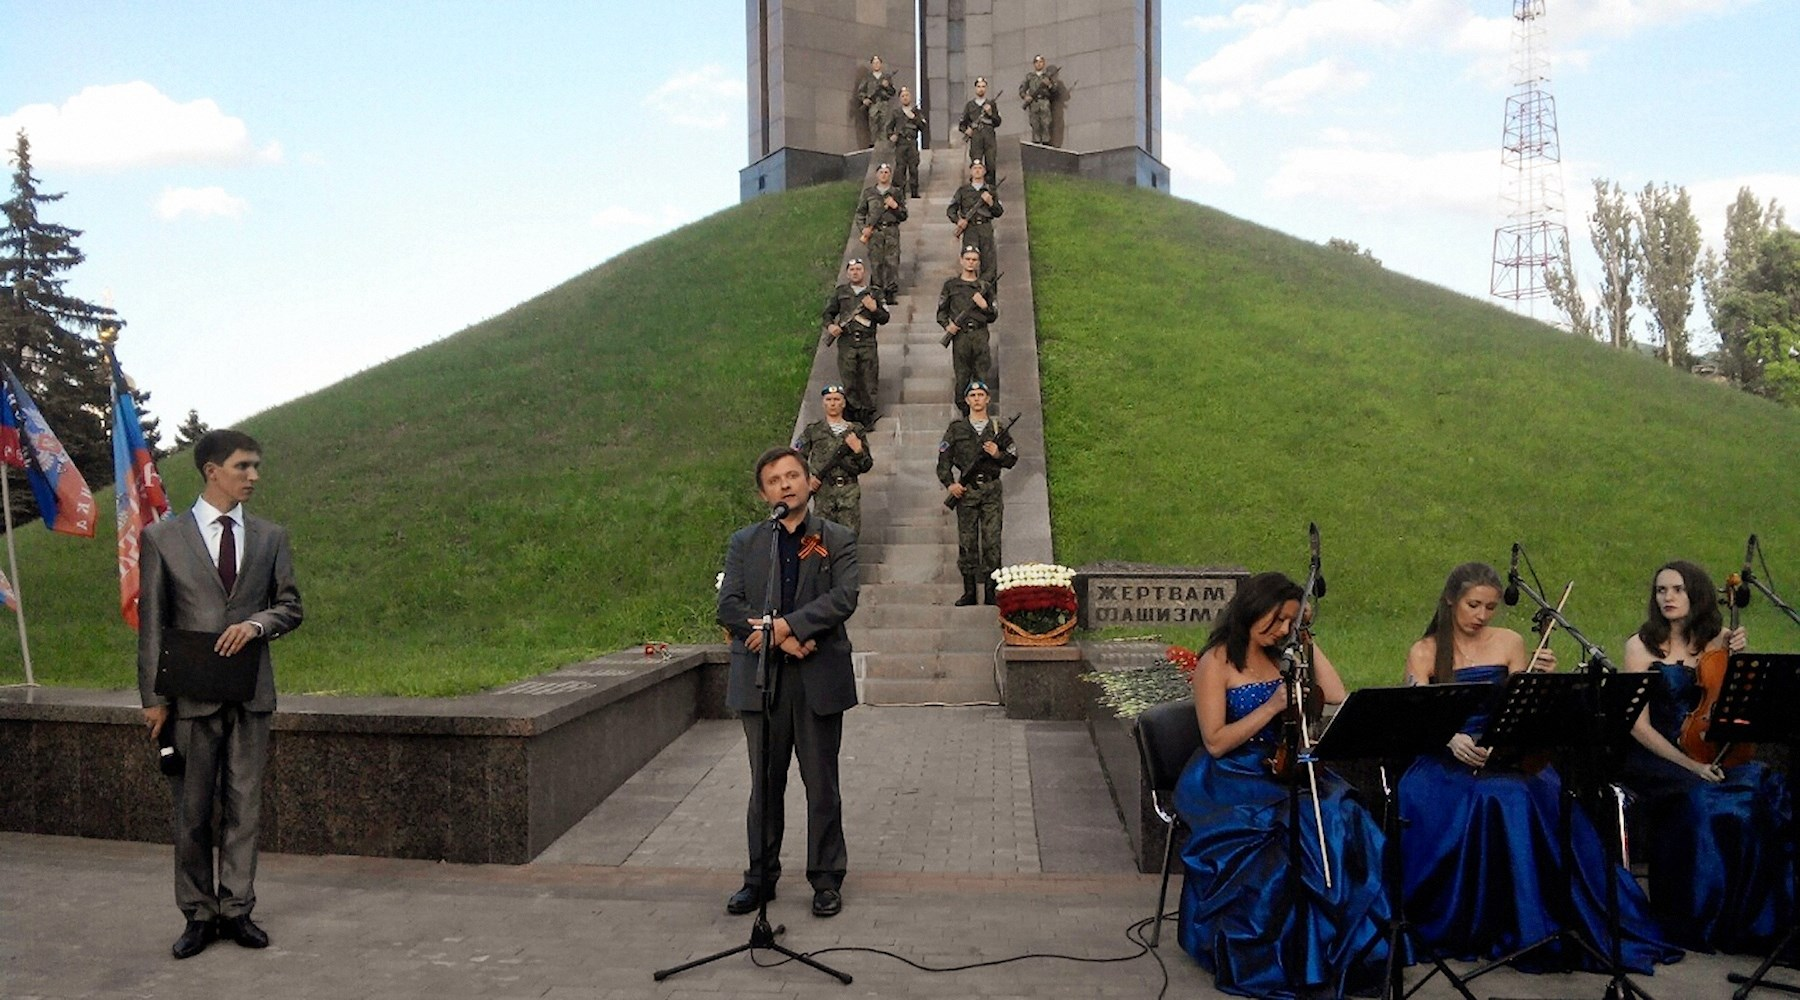 00 monument to the Victims of fascism in Donetsk 02. Mateusz Piskorski from Poland. 110715